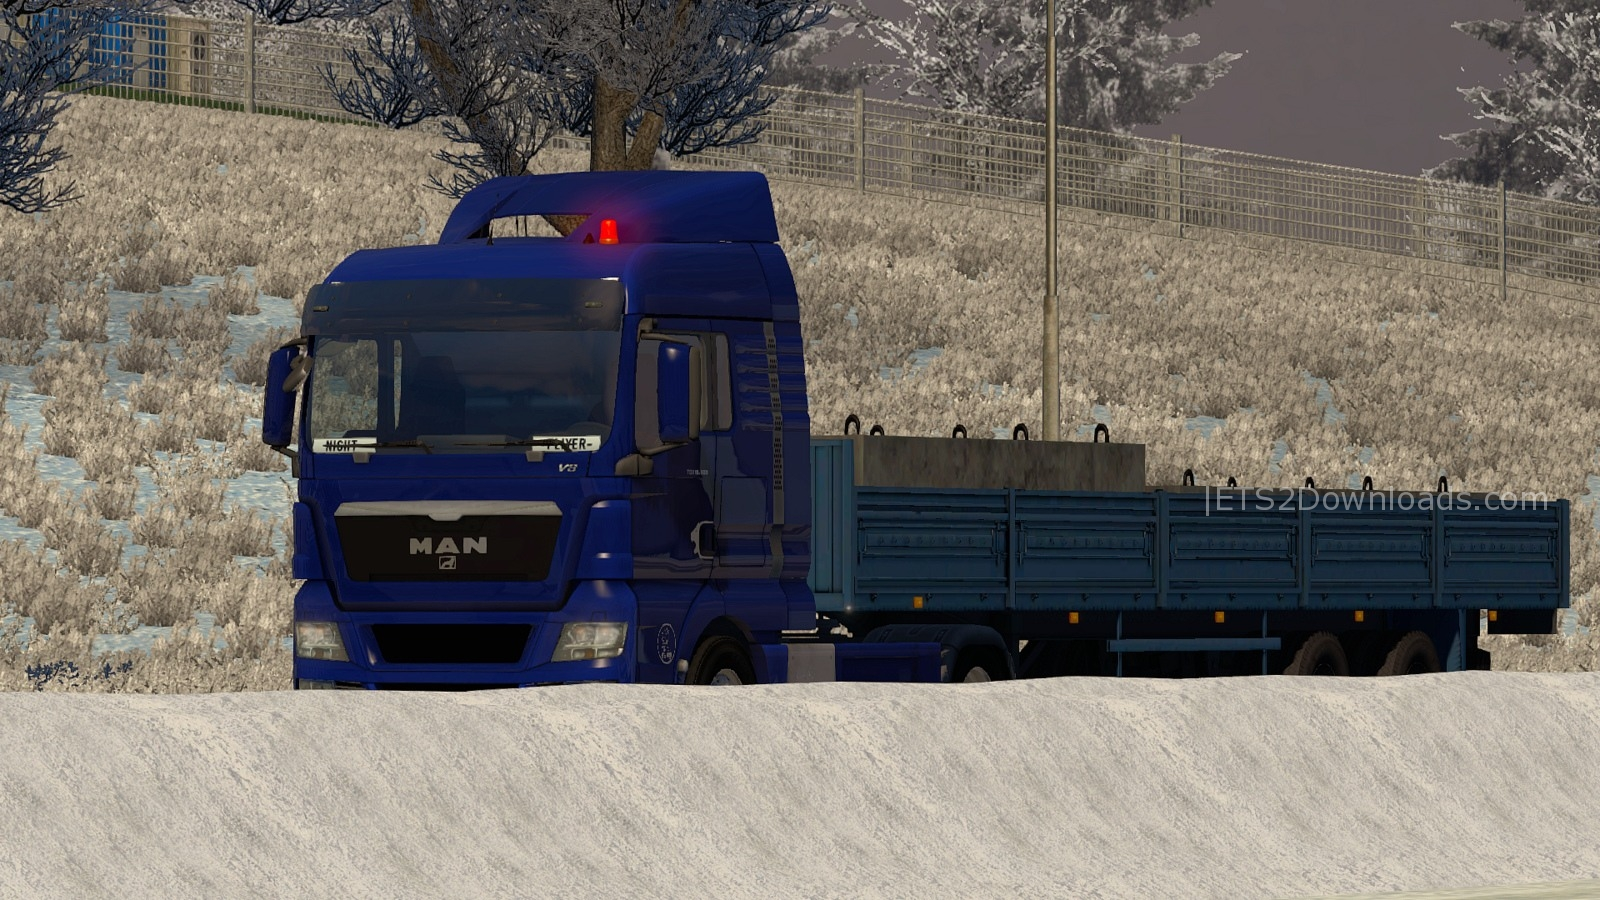 Ets2mp for mac